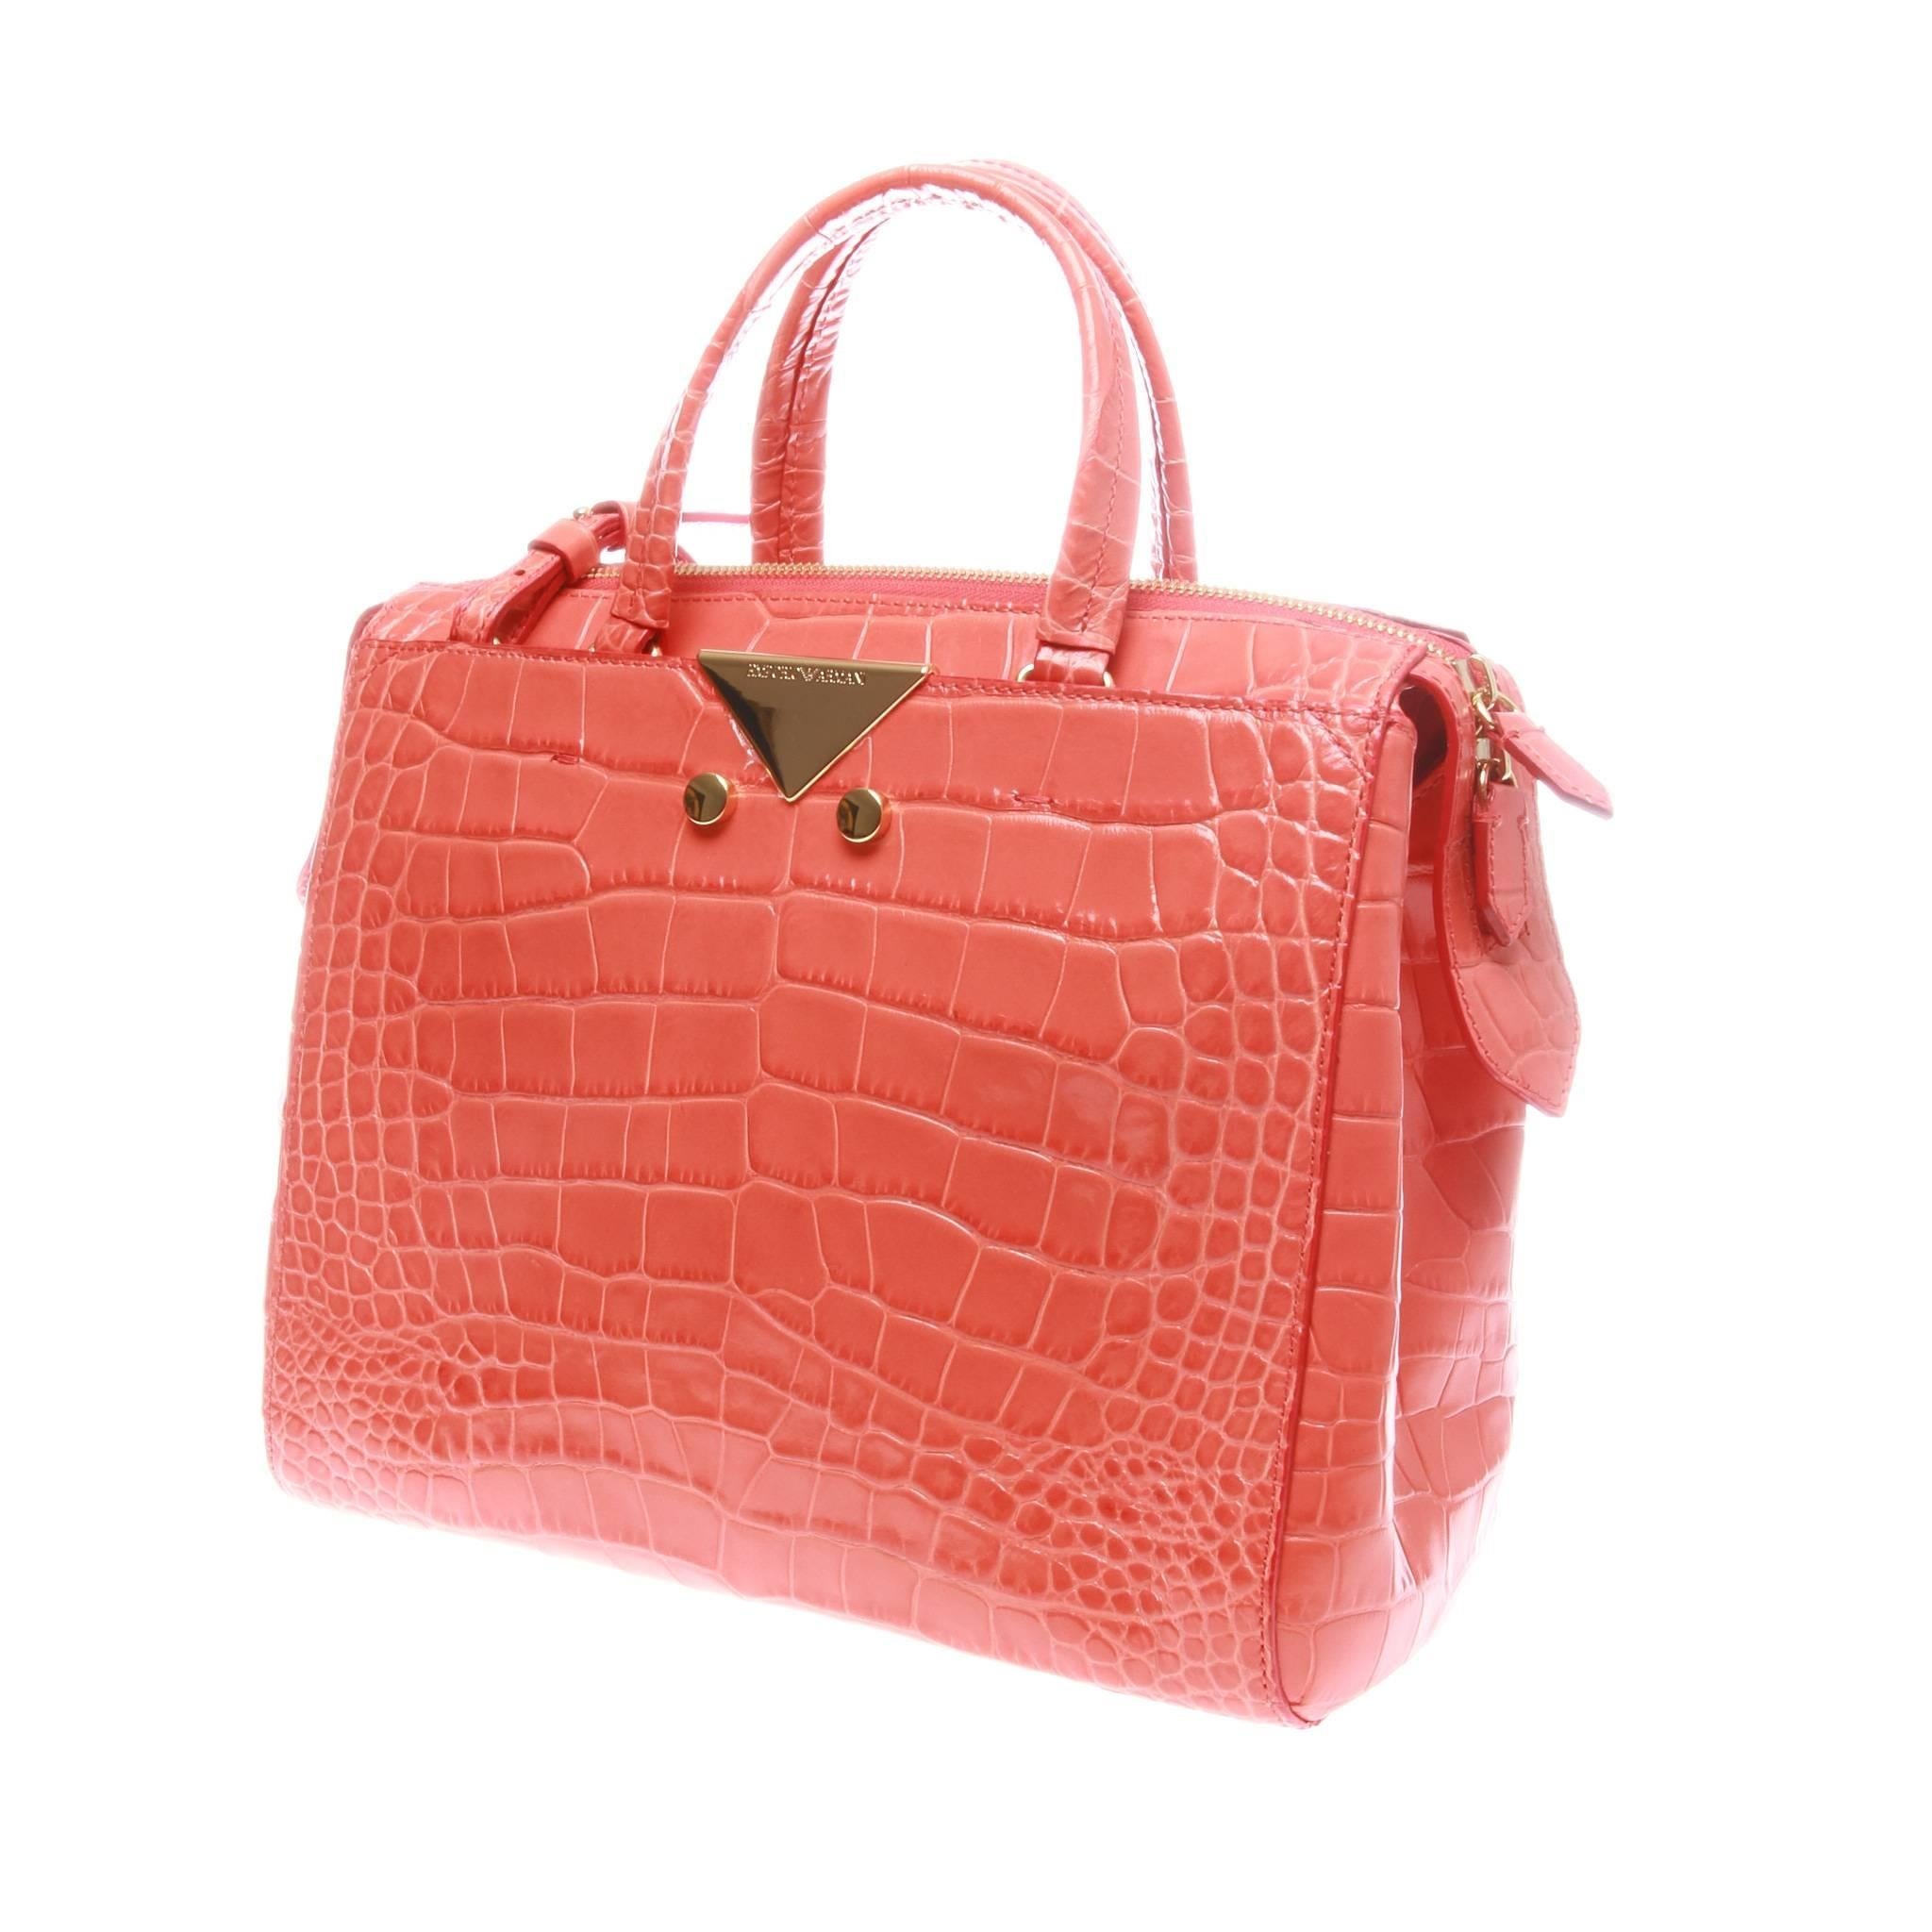 1stdibs Emporio Armani Coral Orange Crocodile Look Shopper tCb6pNYp3Z